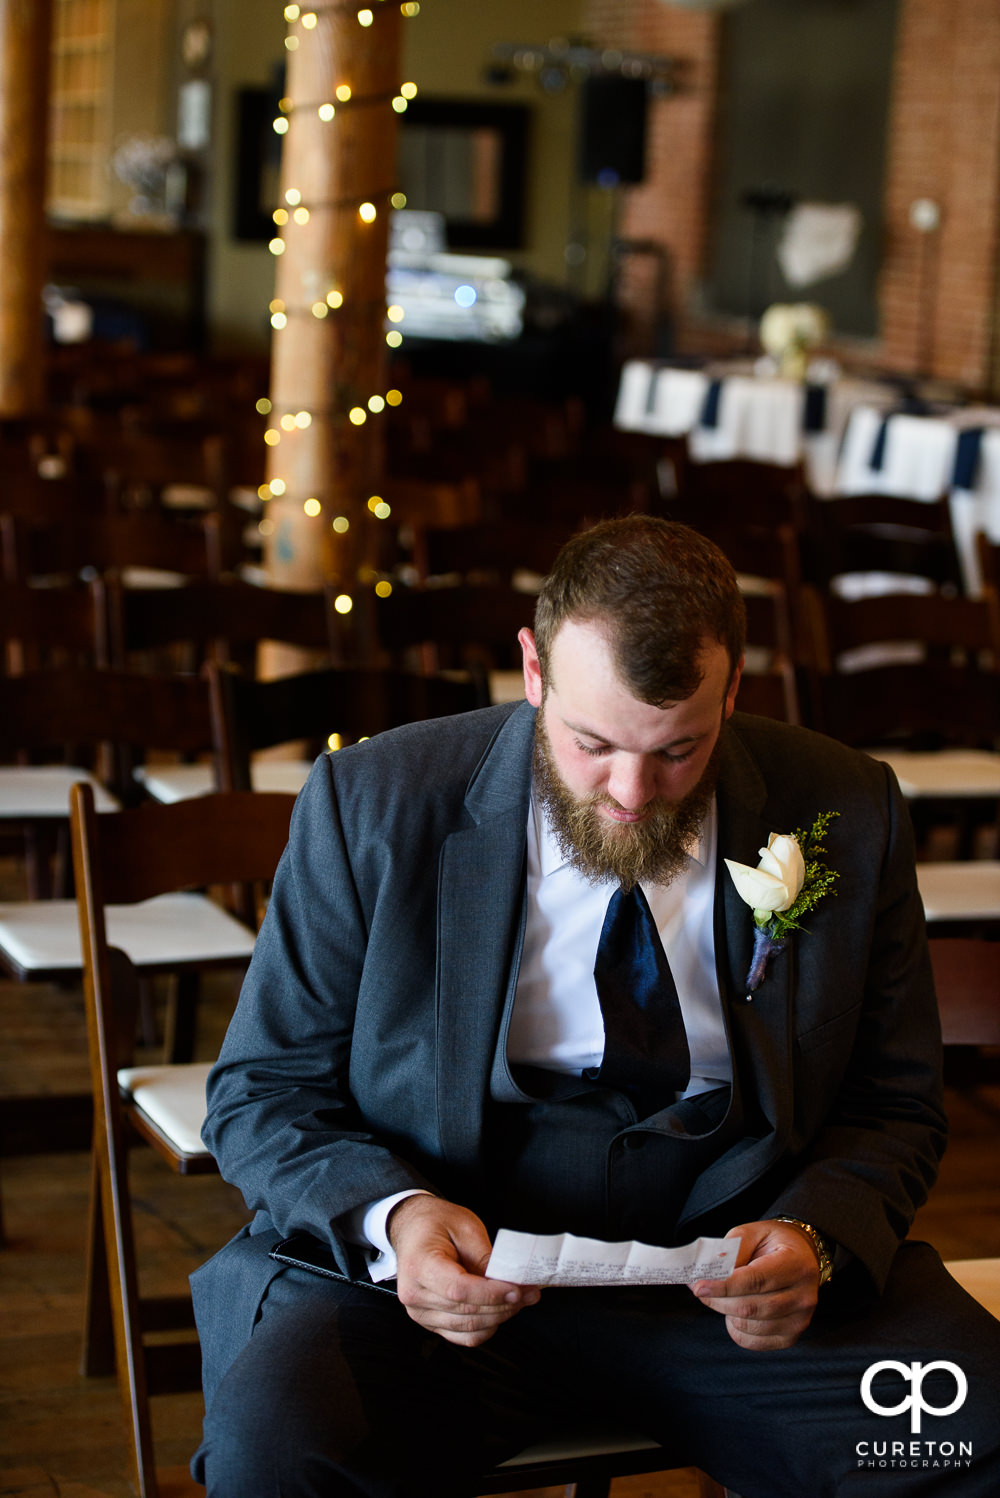 Groom reading a pre-wedding note from his bride.